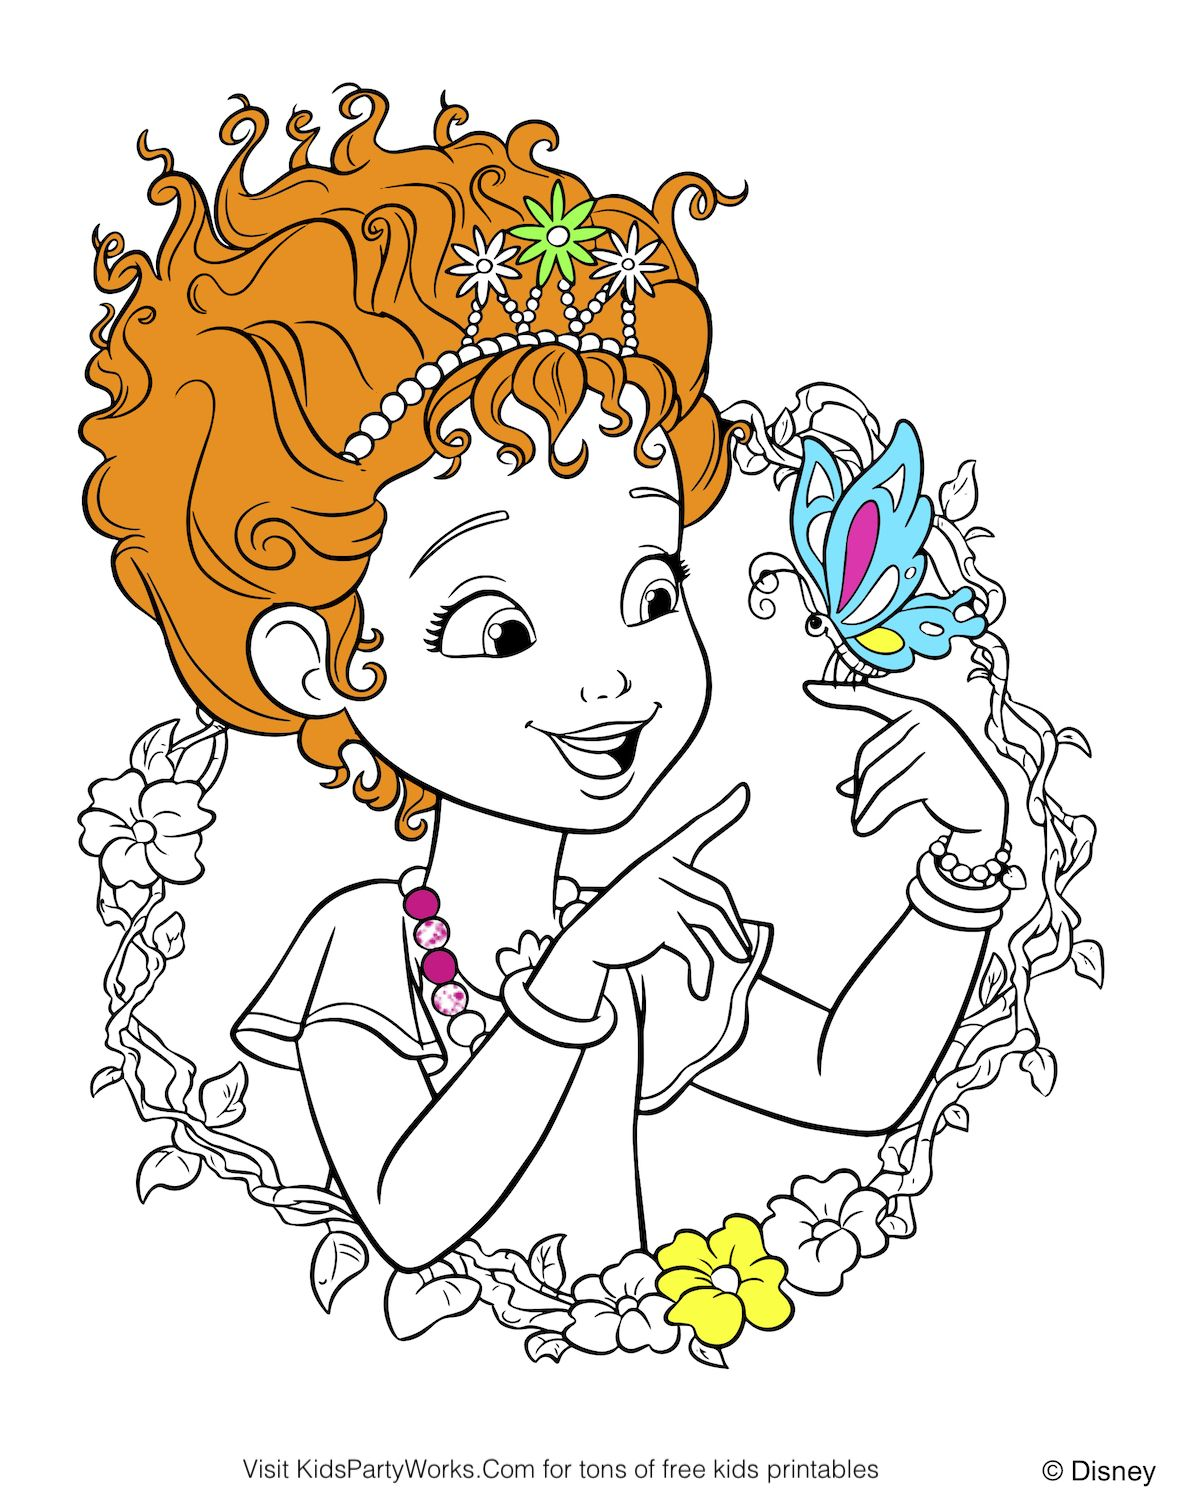 New Free Fancy Nancy Coloring Page From Disney Color Online Or Print And Color L Kidspartyworks Com Fancy Nancy Fancy Nancy Party Fancy Nancy Clancy